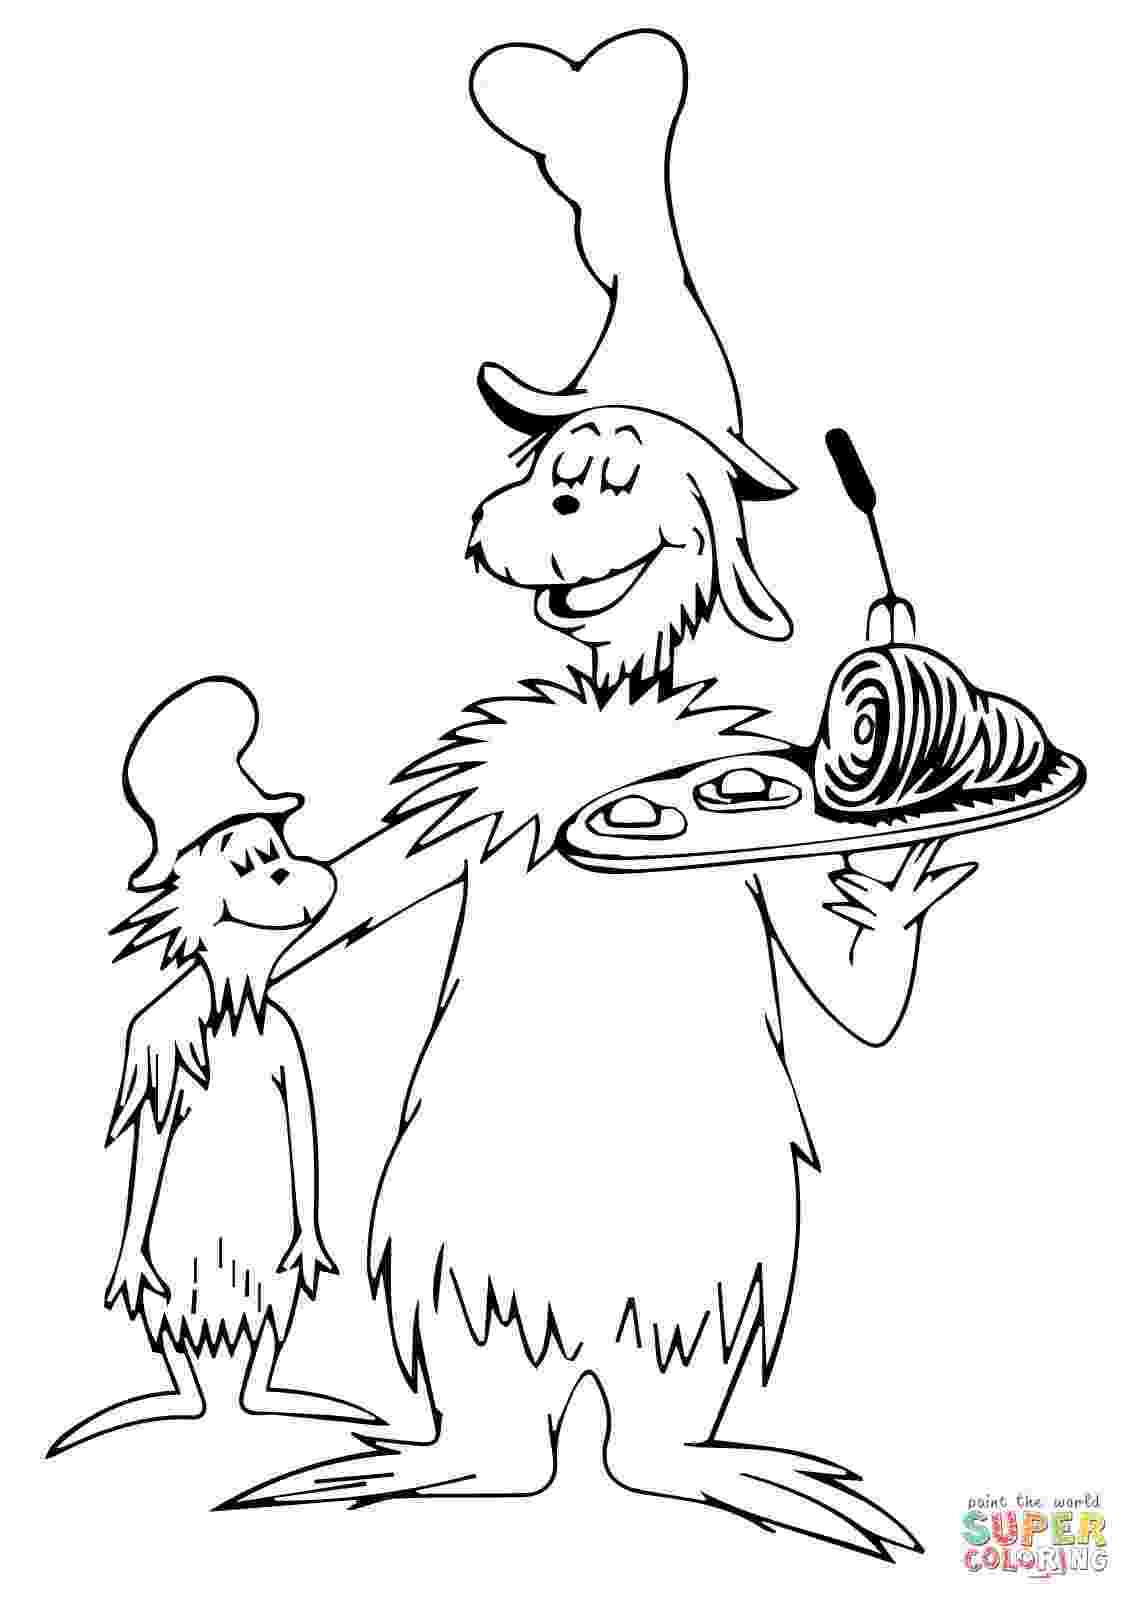 green eggs and ham coloring awesome and beautiful green eggs ham coloring pages and coloring green ham eggs